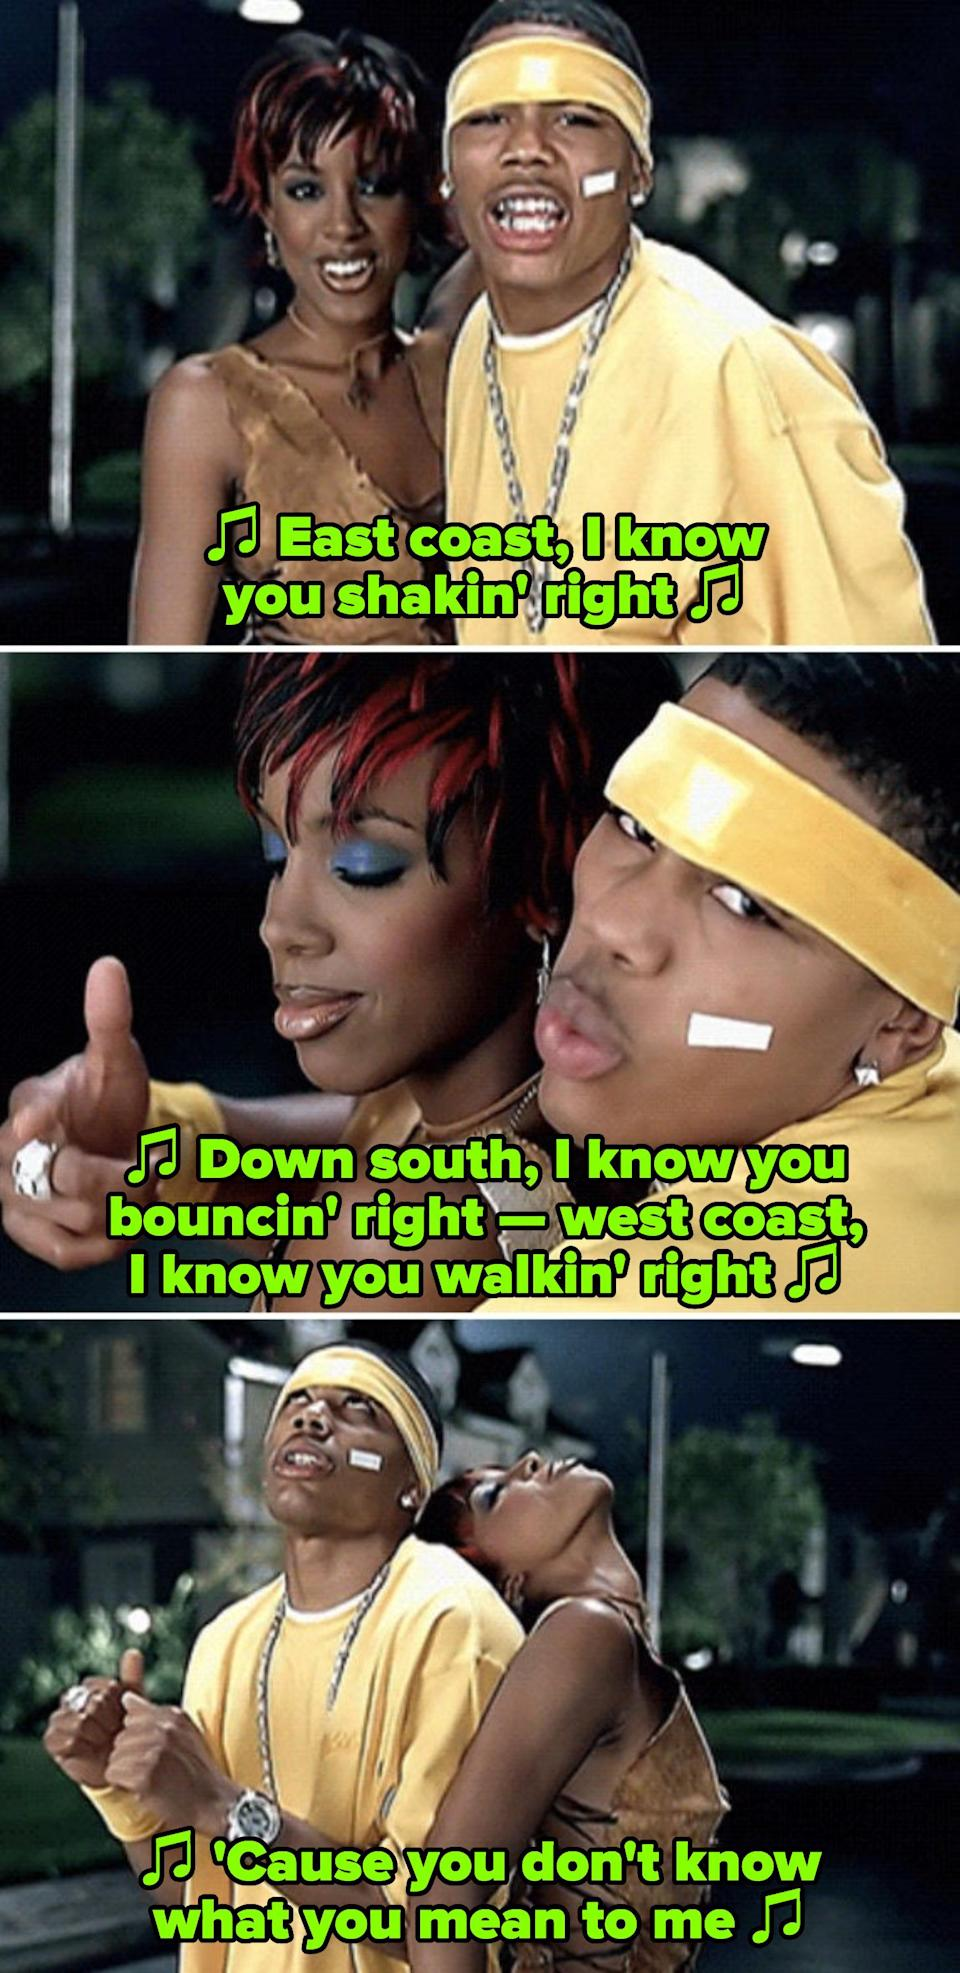 """Rowland and Nelly in their """"Dilemma"""" music video, singing: """"East coast, I know you shakin' right, down south, I know you bouncin' right"""""""